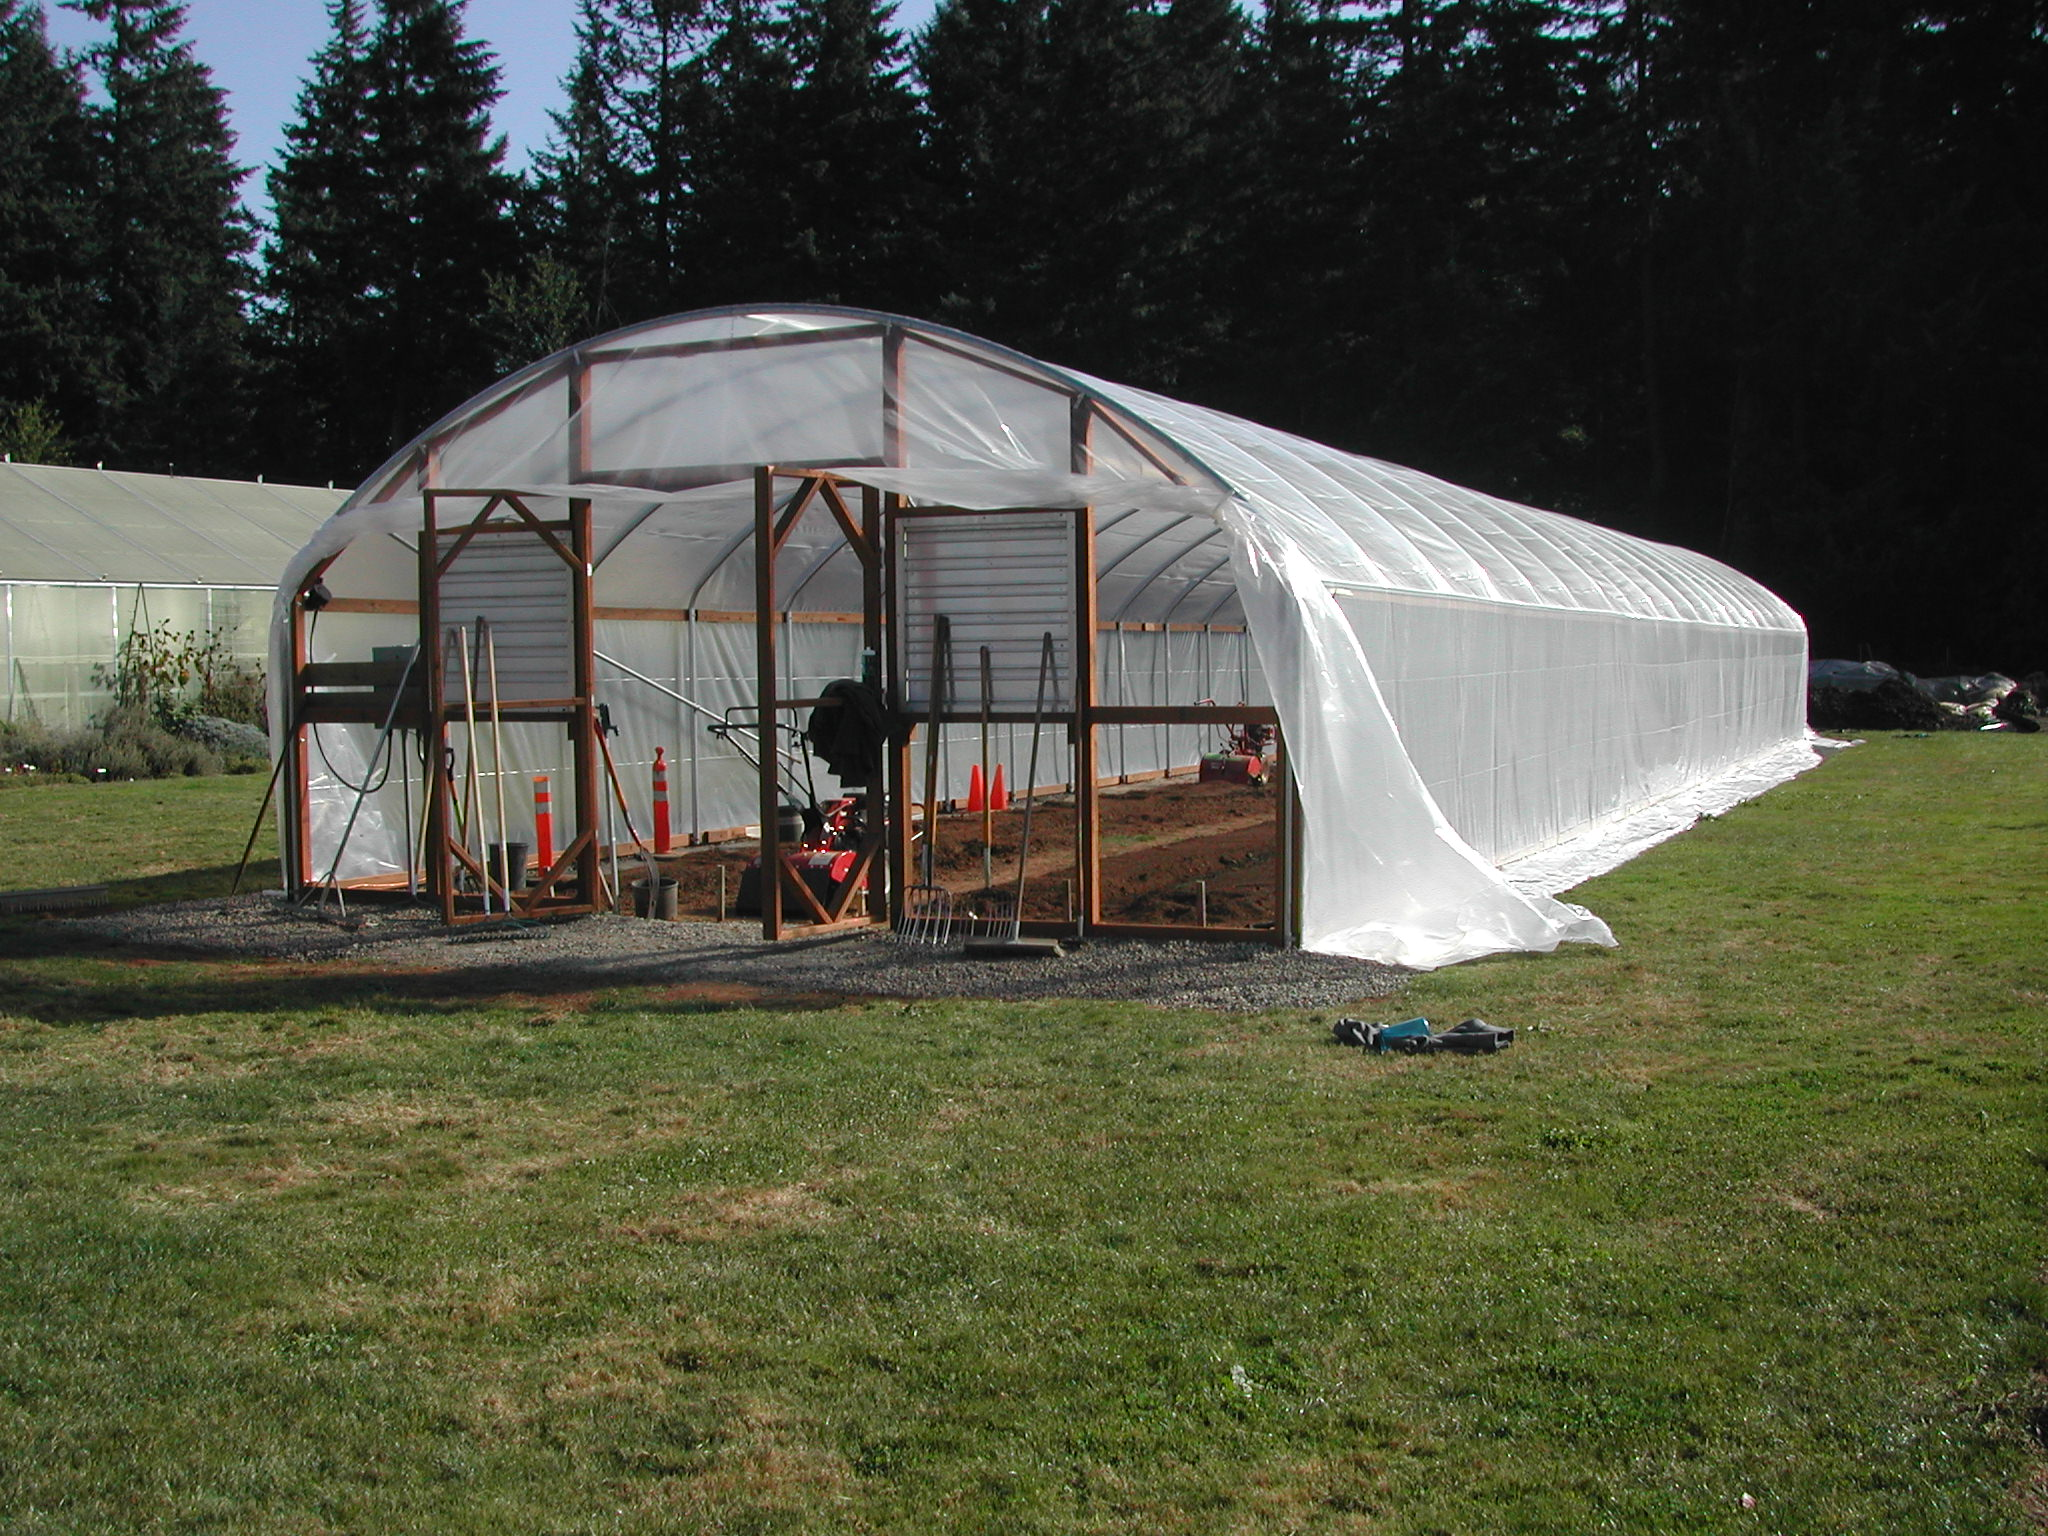 This is the hoop house for the Autumn Food Growing class